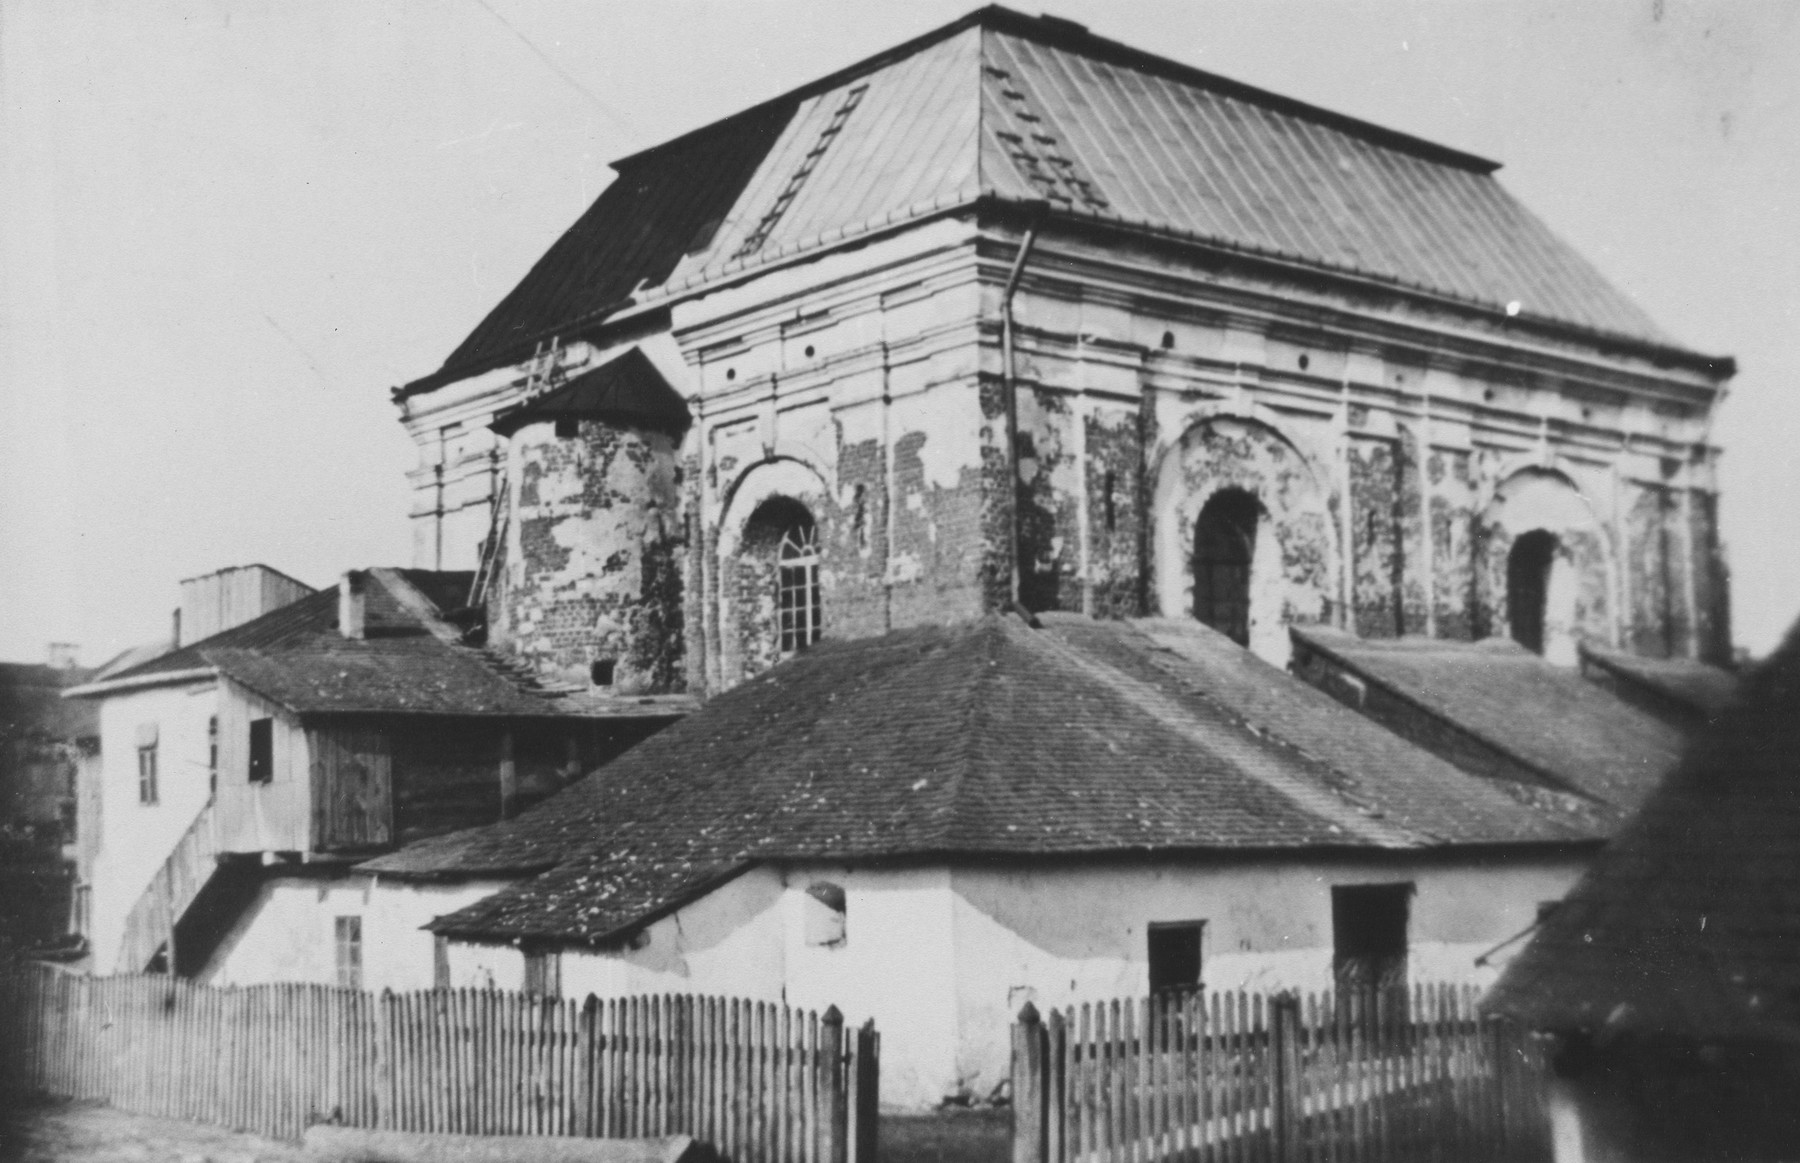 Exterior view of the synagogue in Tomaszow Lubelski.